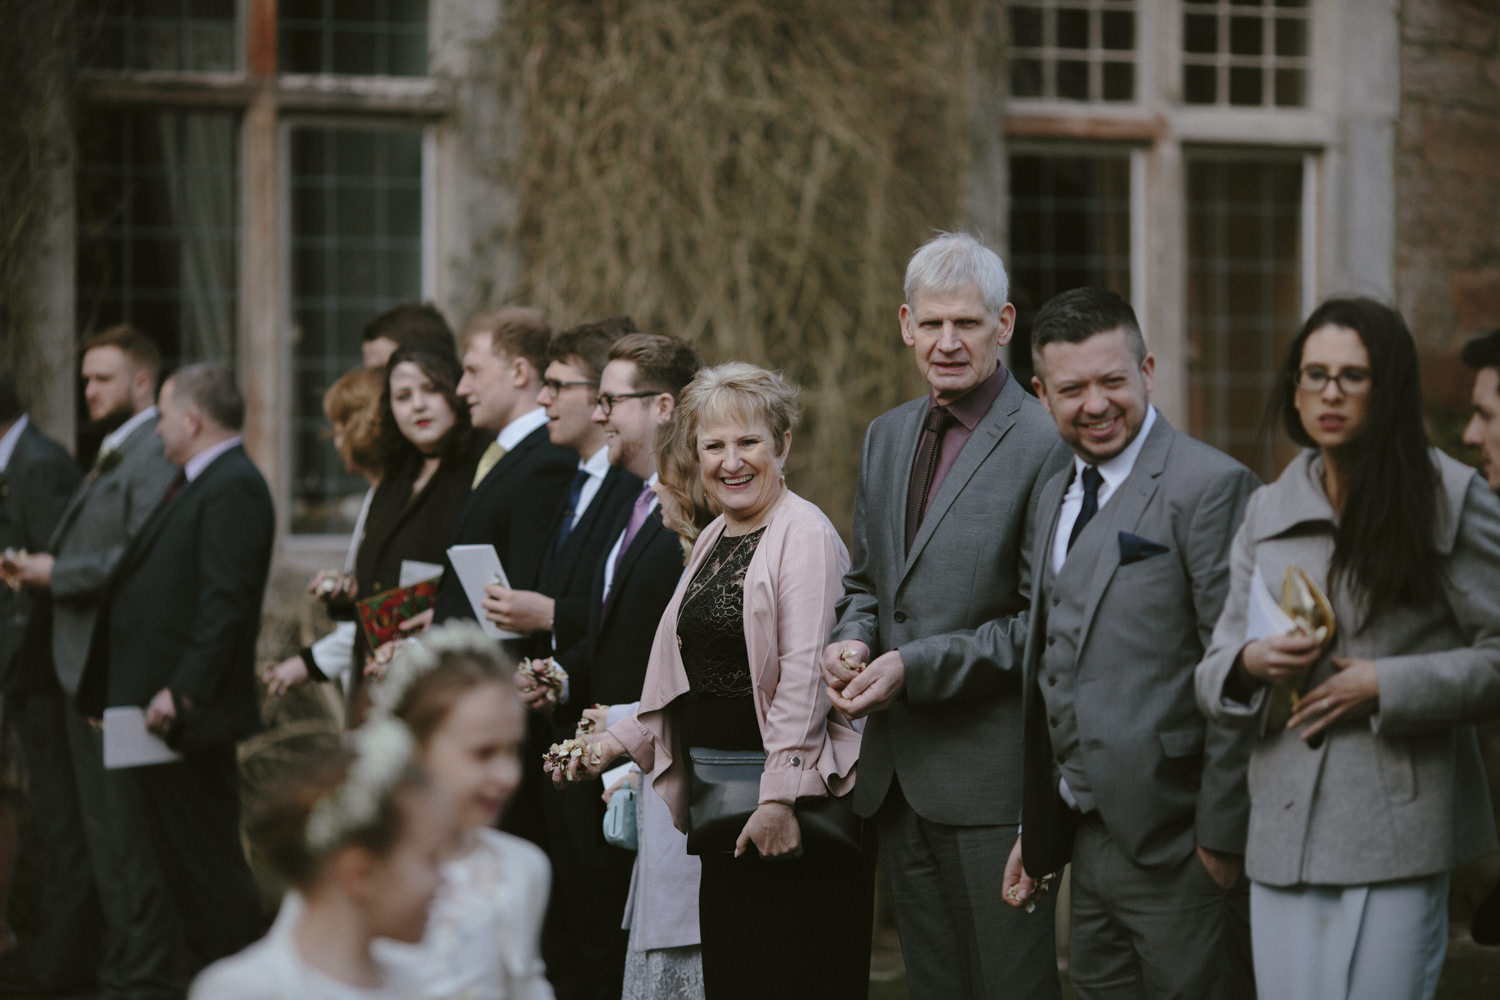 Askham-Hall-Wedding-Websize-227.jpg